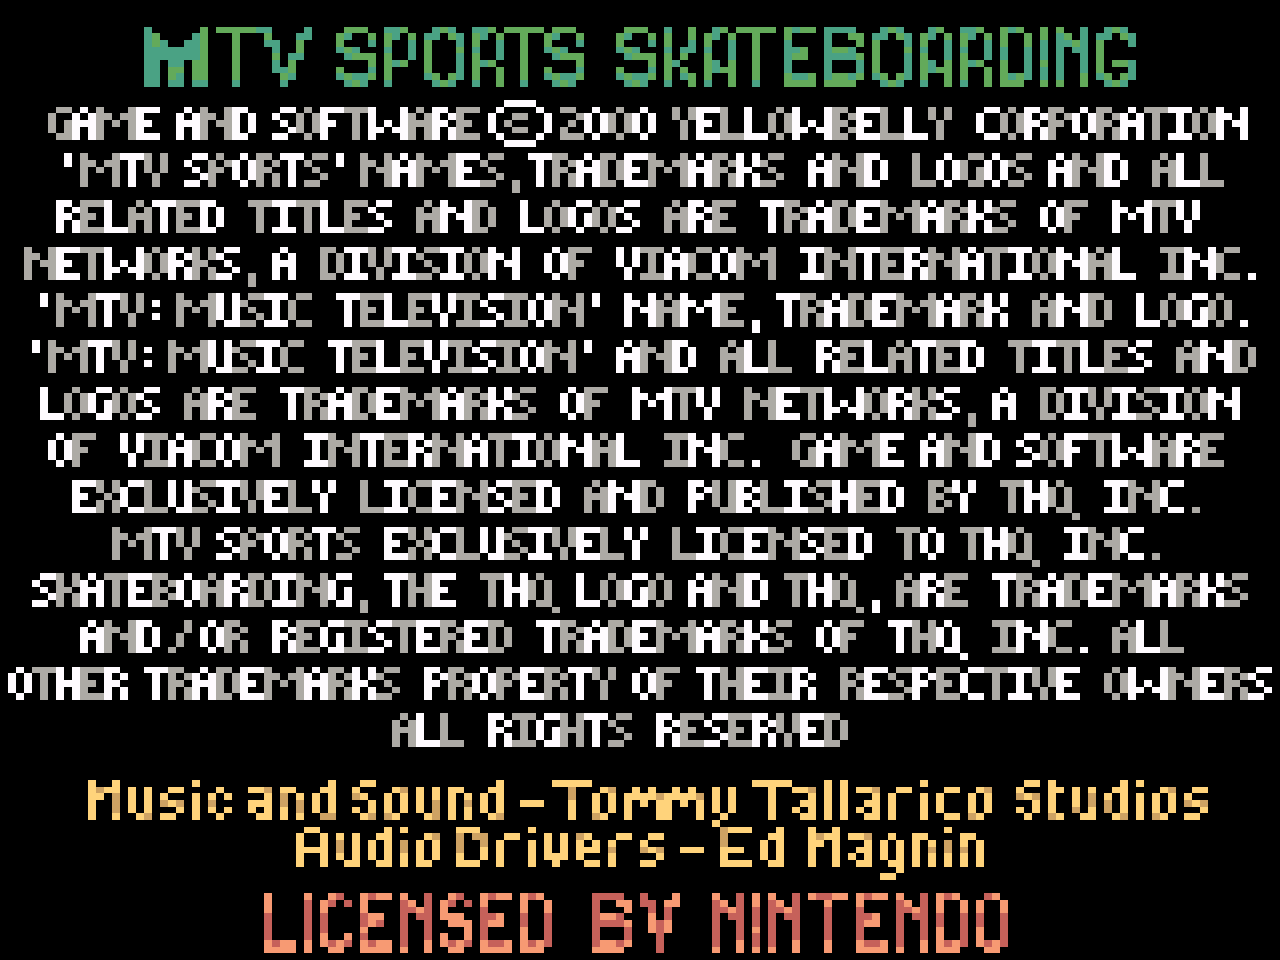 https://s3.eu-west-3.amazonaws.com/games.anthony-dessalles.com/MTV Sports Skateboarding featuring Andy MacDonald GBC 2020 - Screenshots/MTV Sports Skateboarding featuring Andy MacDonald-201115-140619.png